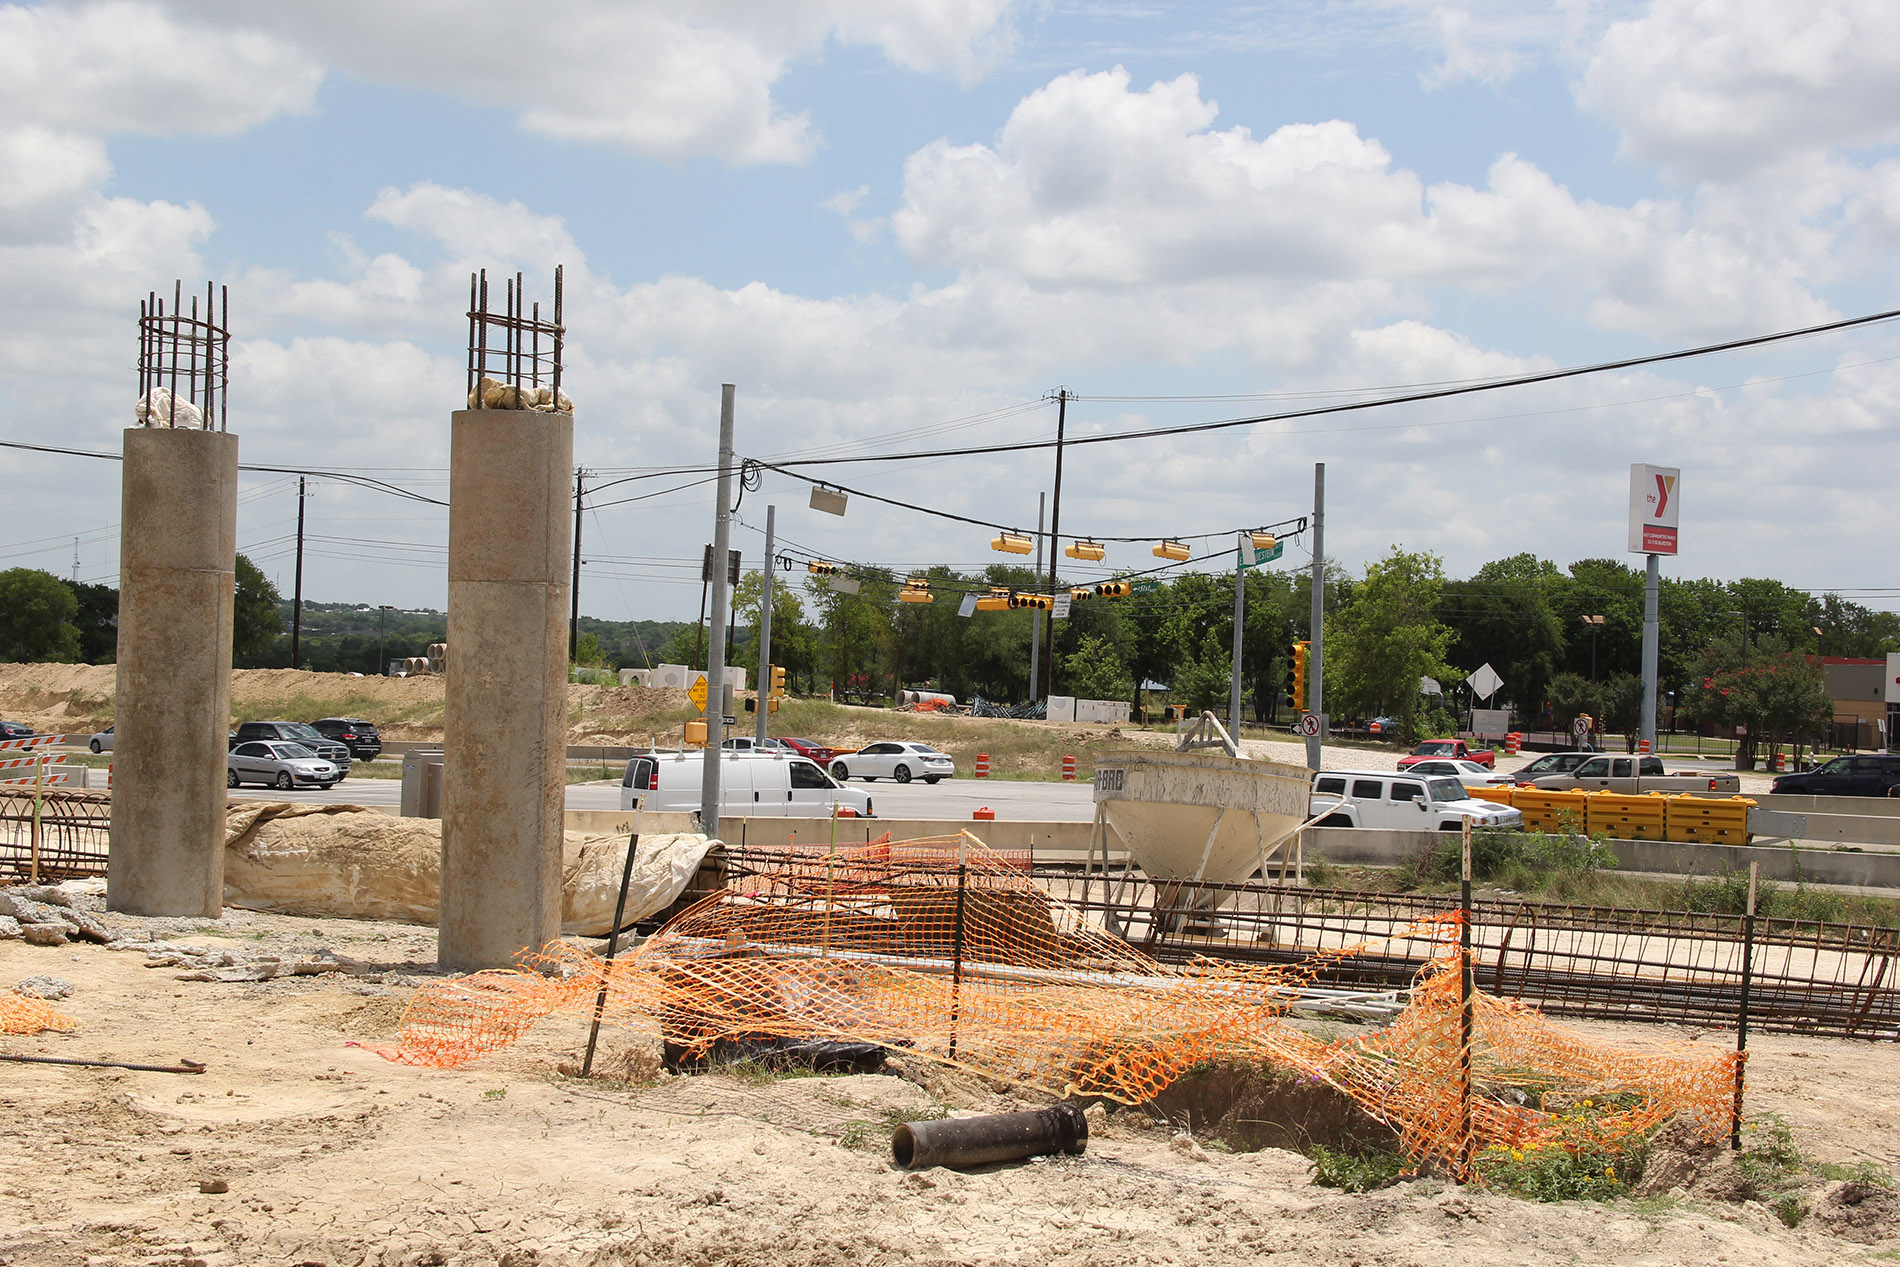 Columns for New Pedestrian Bridge to East Communities YMCA at 51st Street